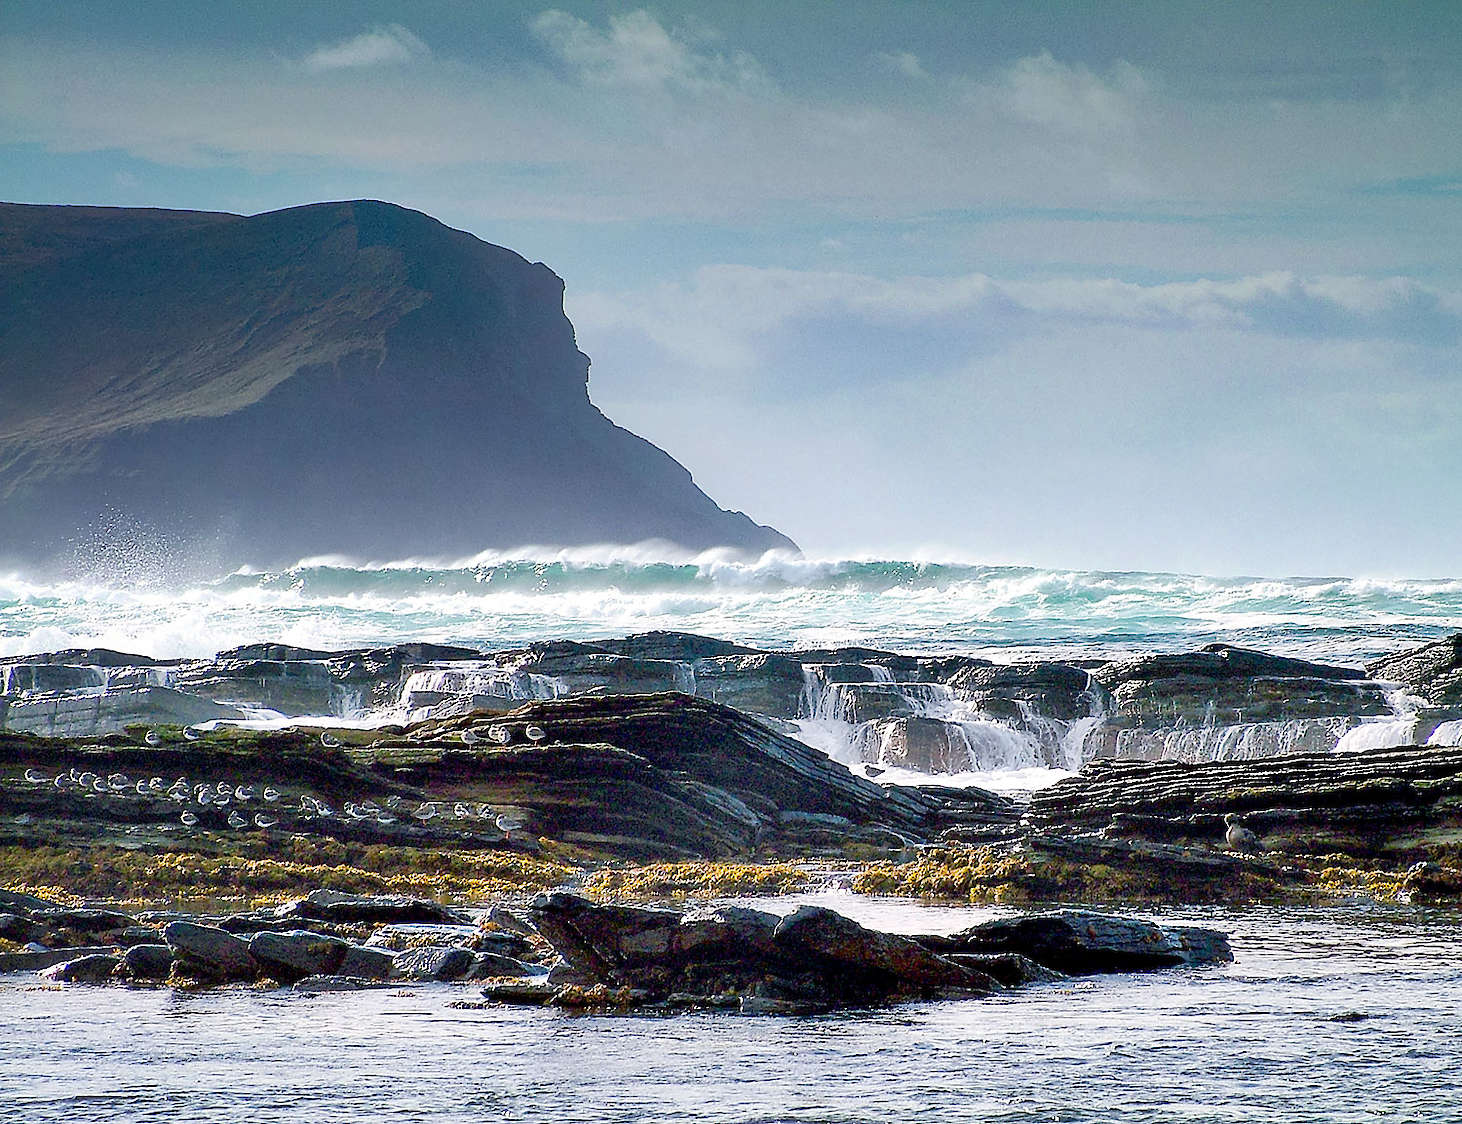 Rolling waves at Warebeth, Orkney - image by Sigurd Towrie